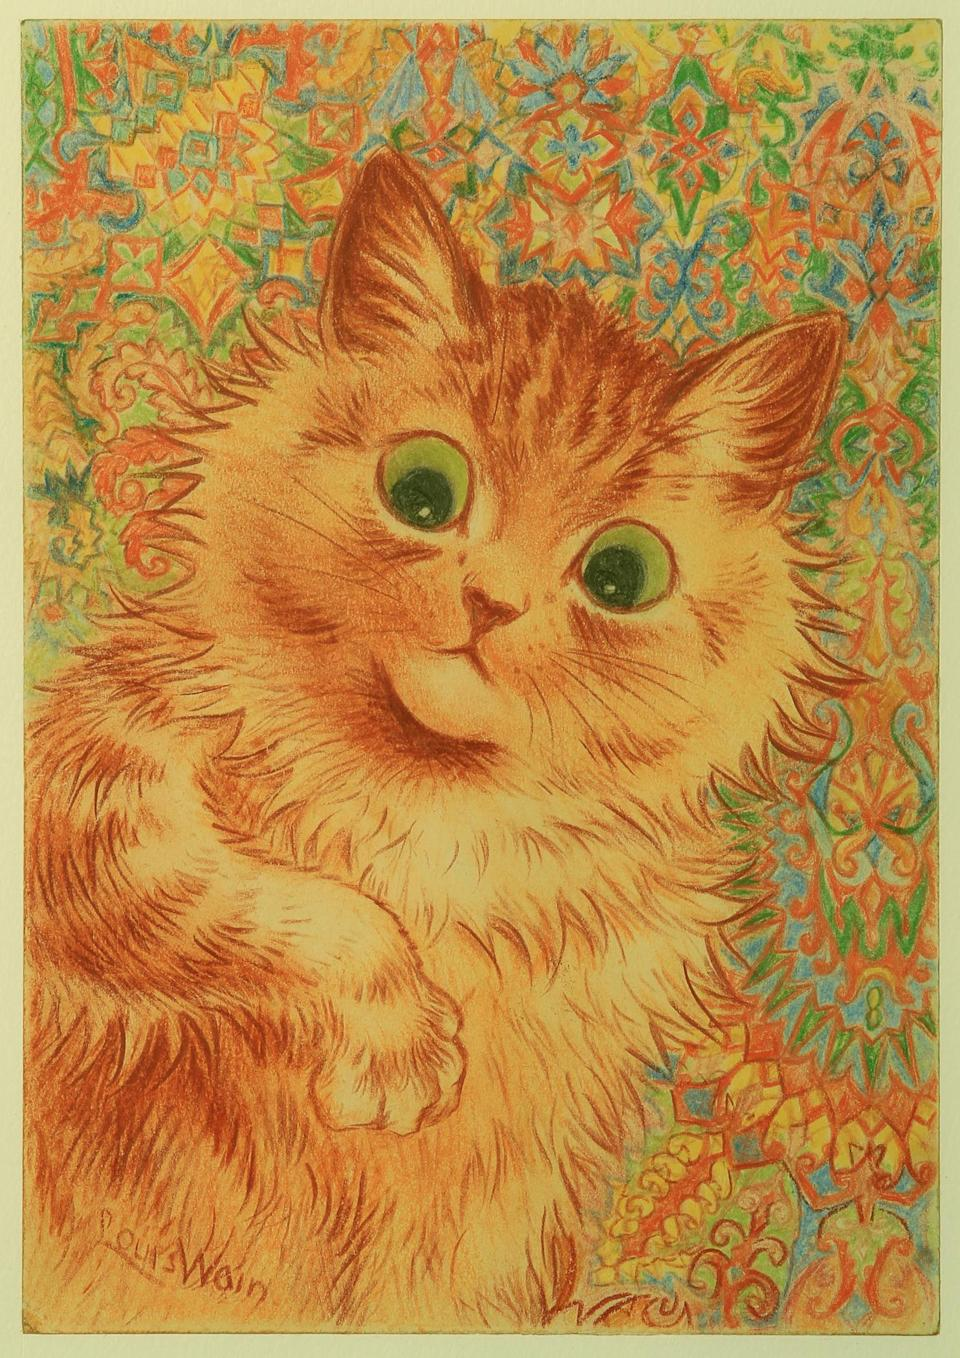 A painting by Louis Wain (Bethlem Museum of the Mind/PA)